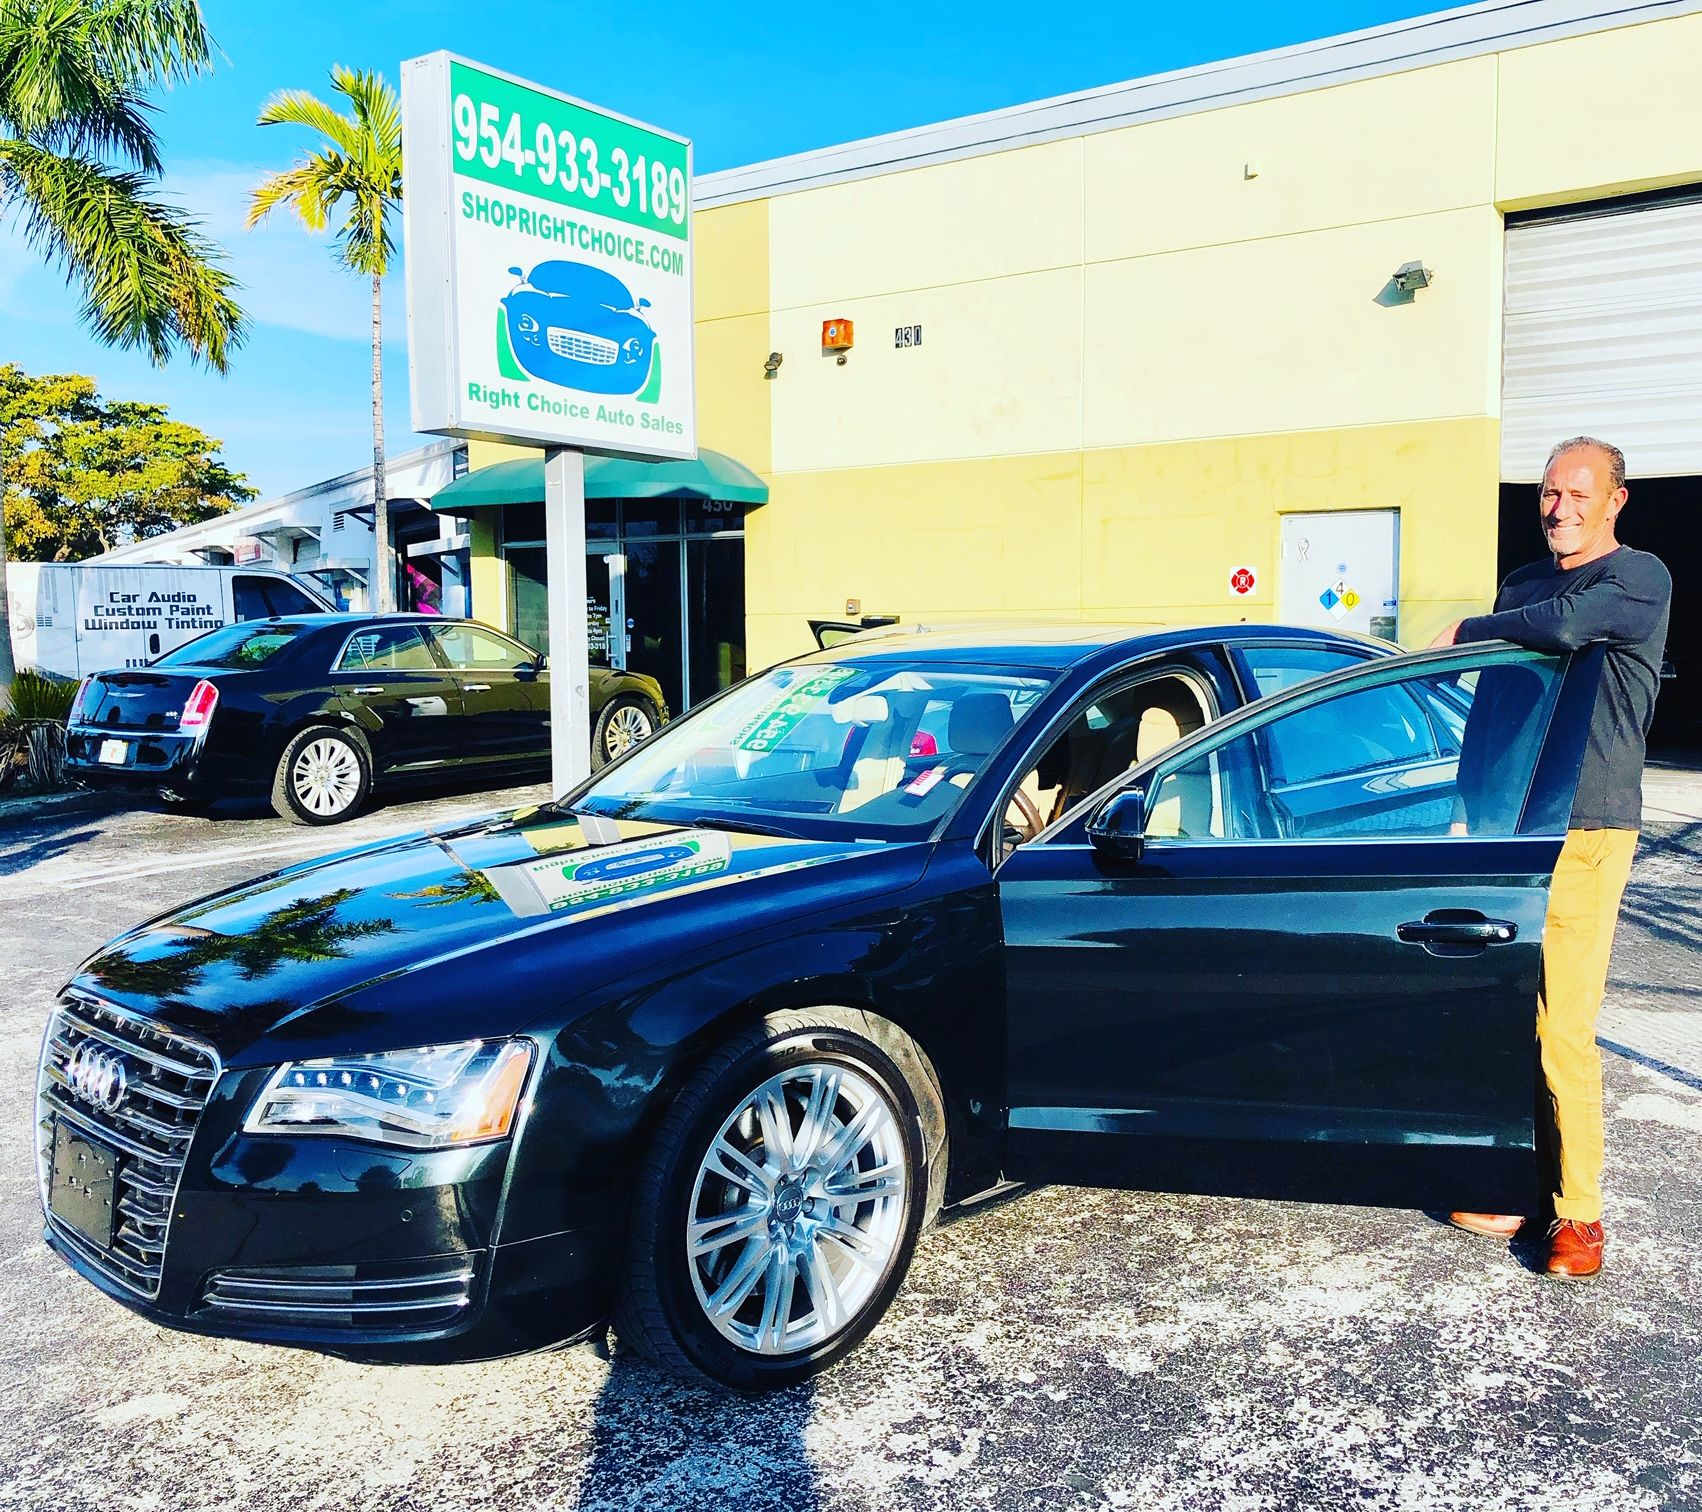 Joe Came From Stuart Florida To Trade In The 2009 Audi A8 He Bought Here 3 Years Ago And To Take Home This Like New 2011 Au Cars For Sale Used Luxury Cars Car